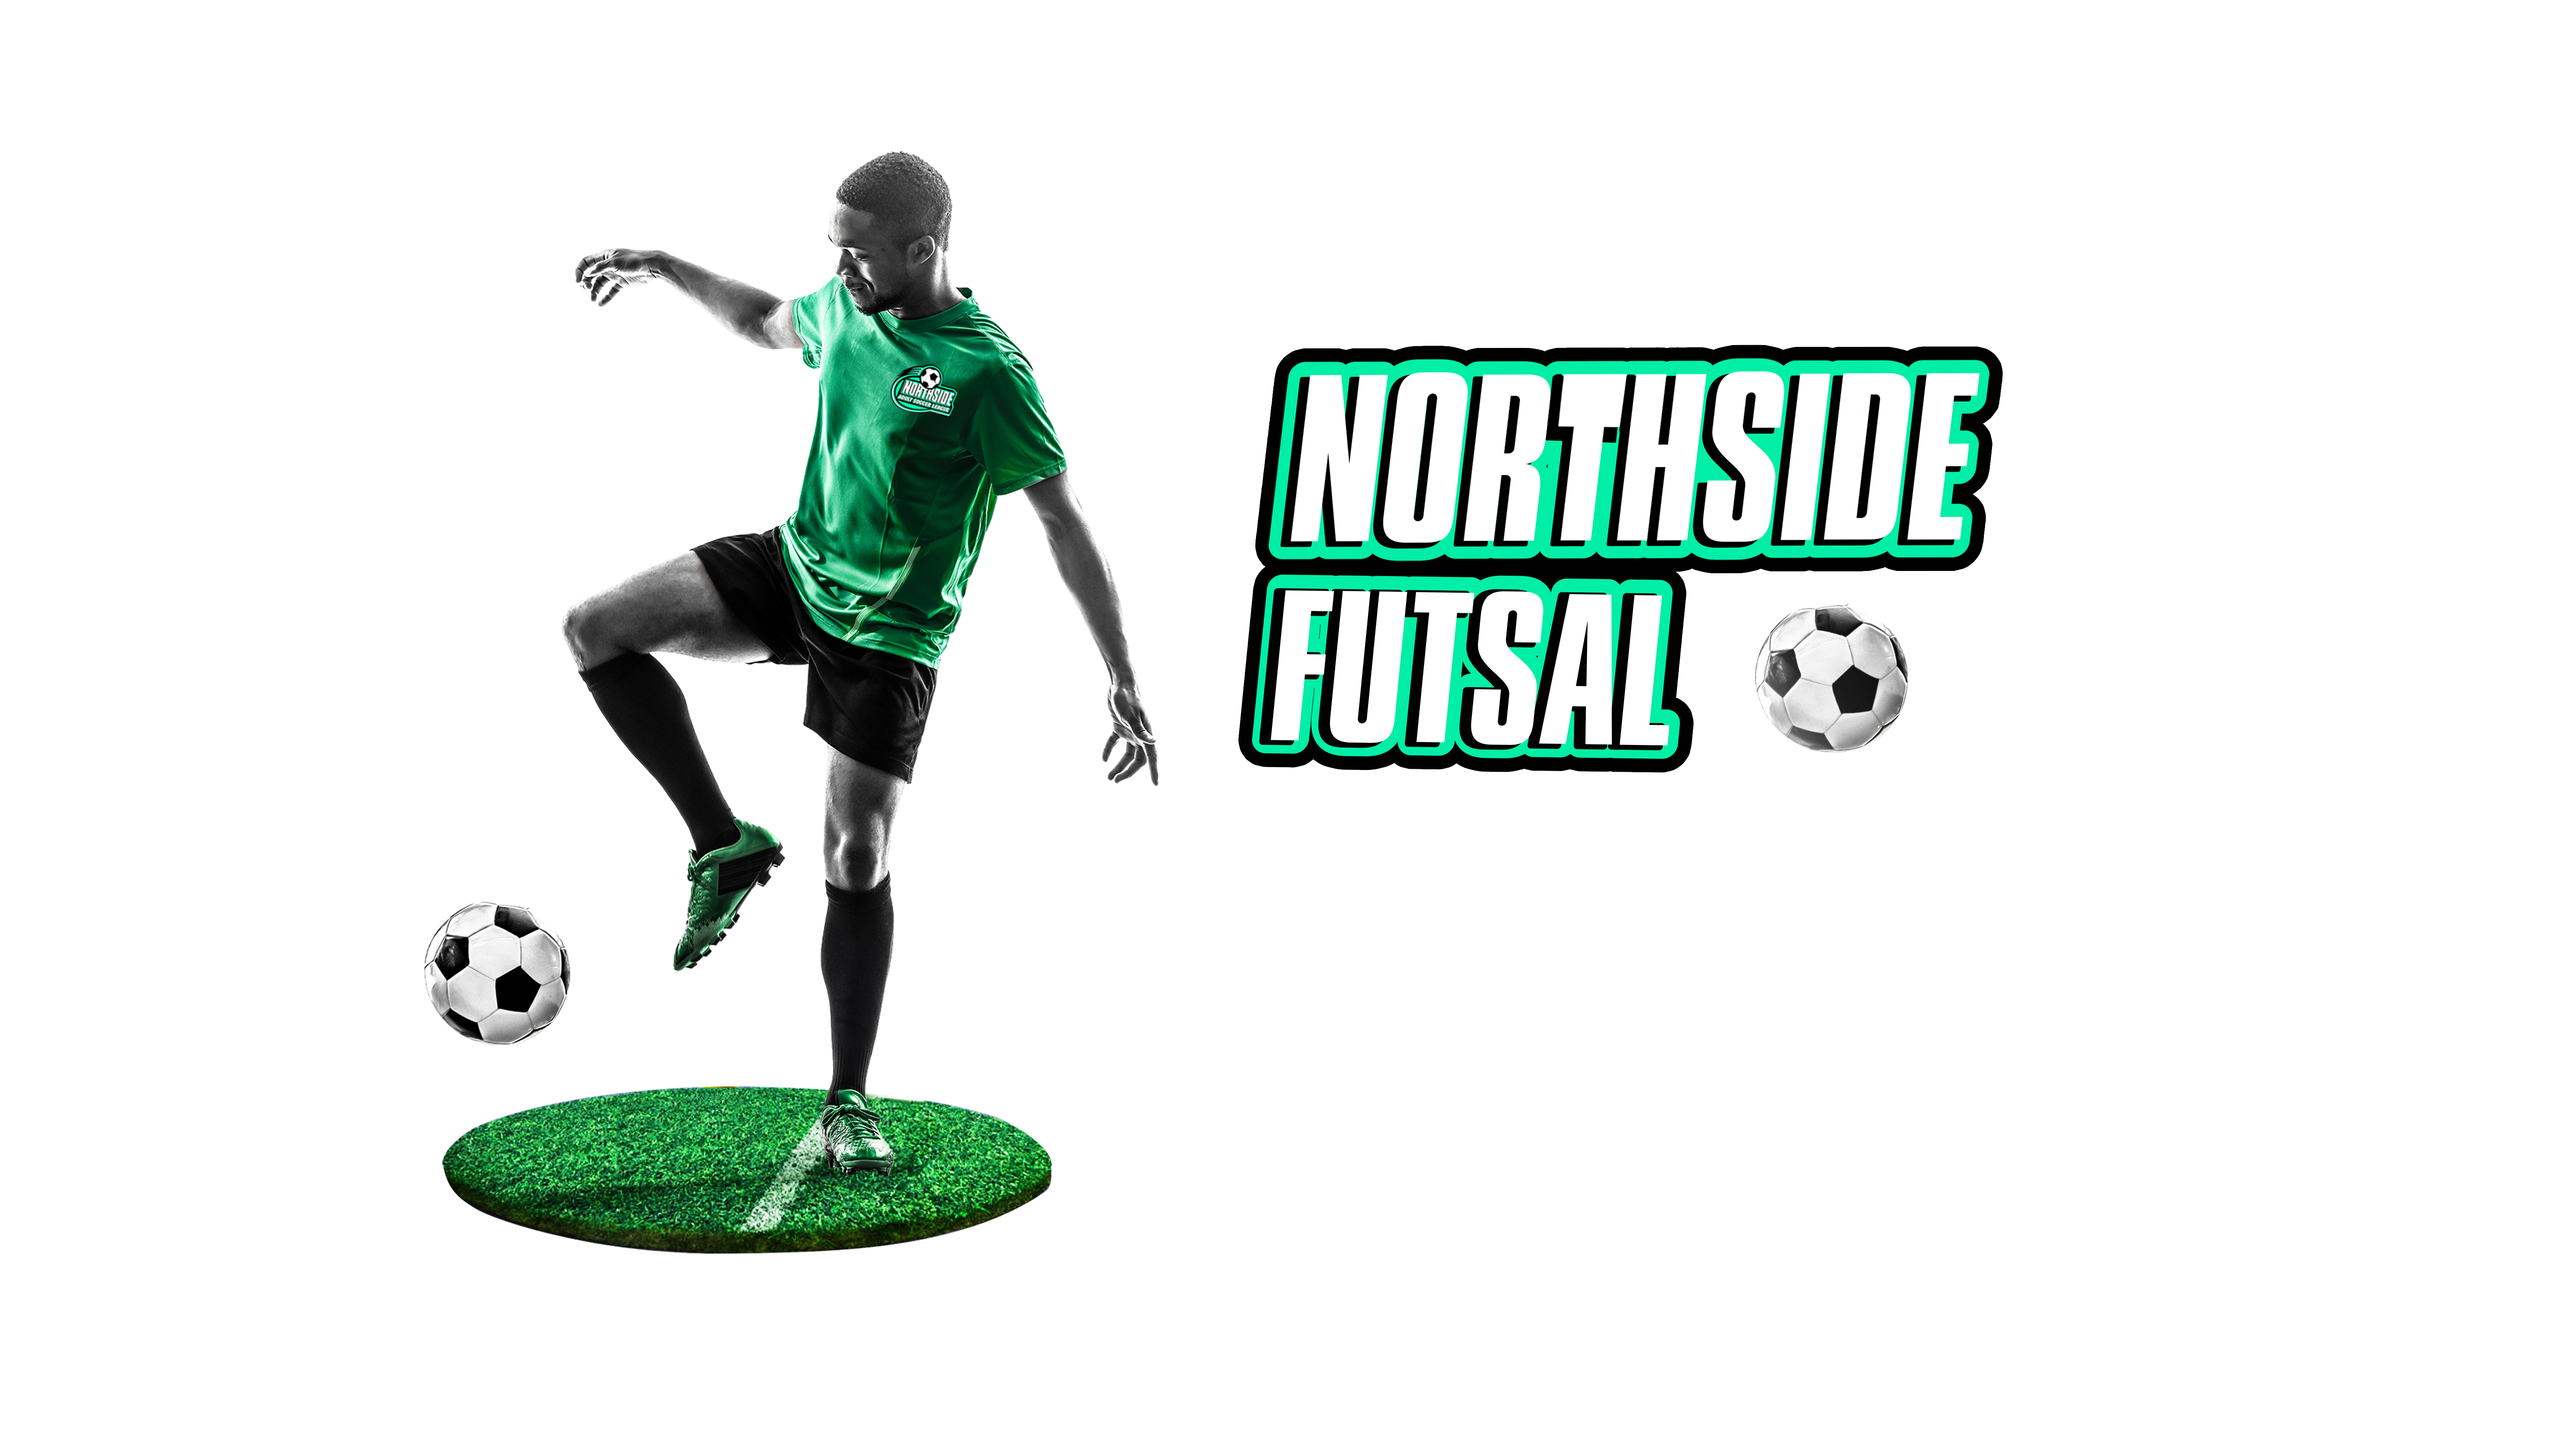 NS futsal team registration Page heroImg